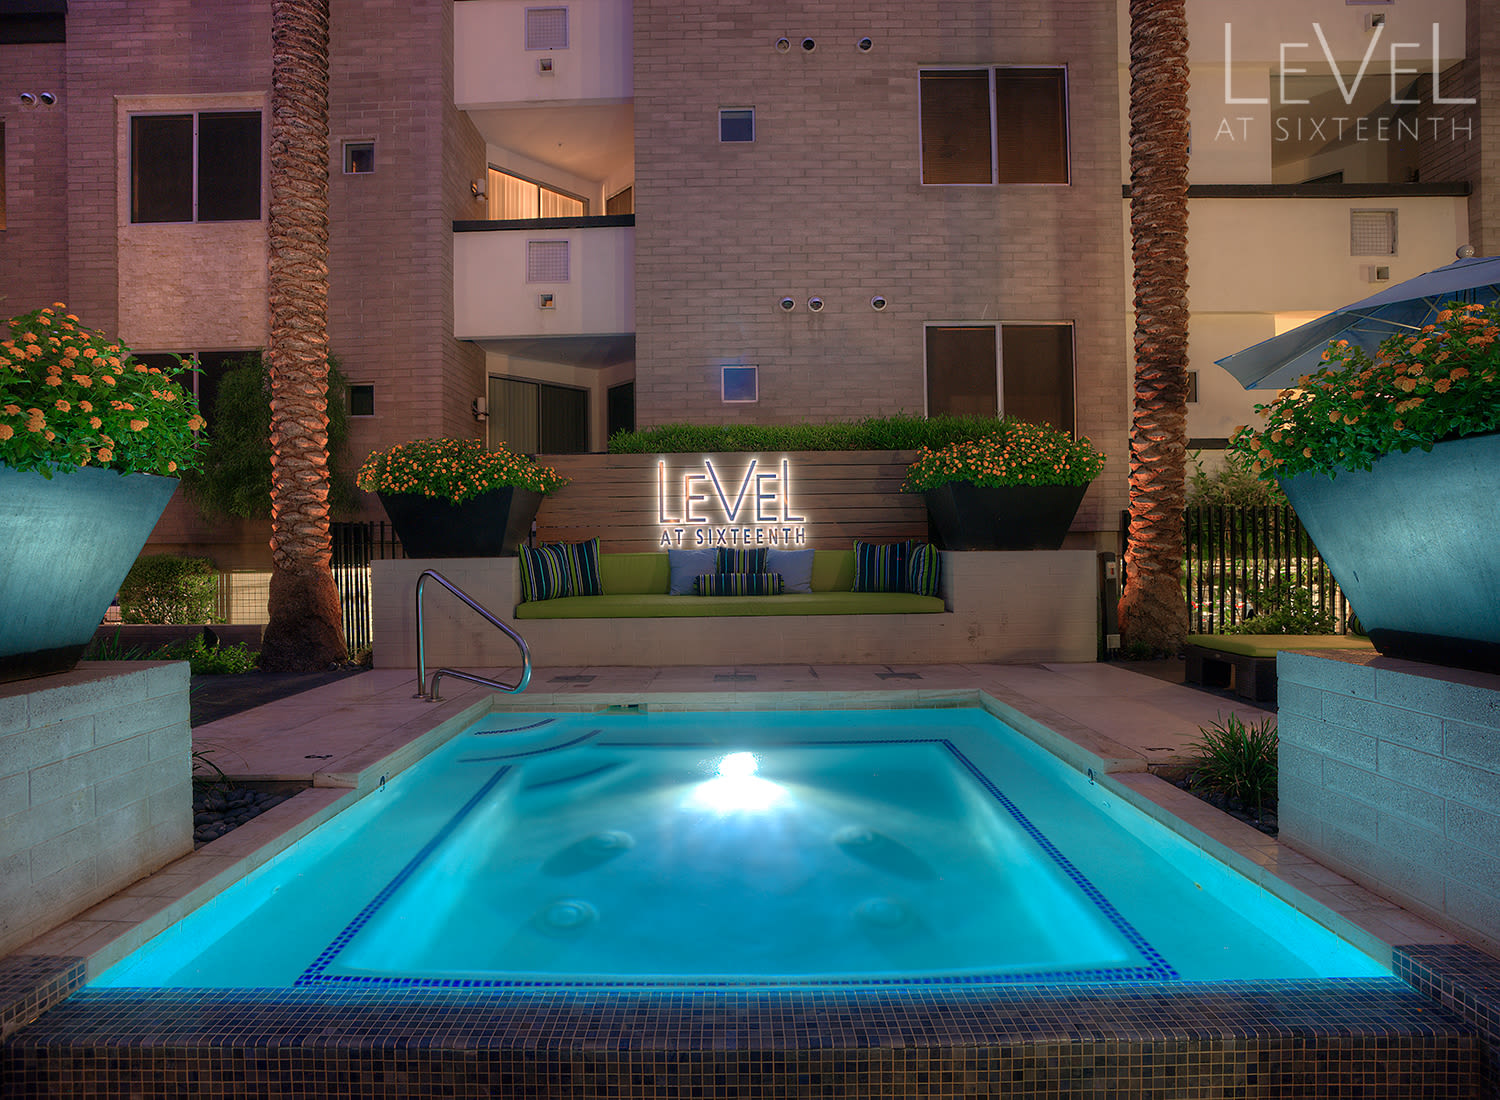 Level at Sixteenth apartments in Phoenix, Arizona